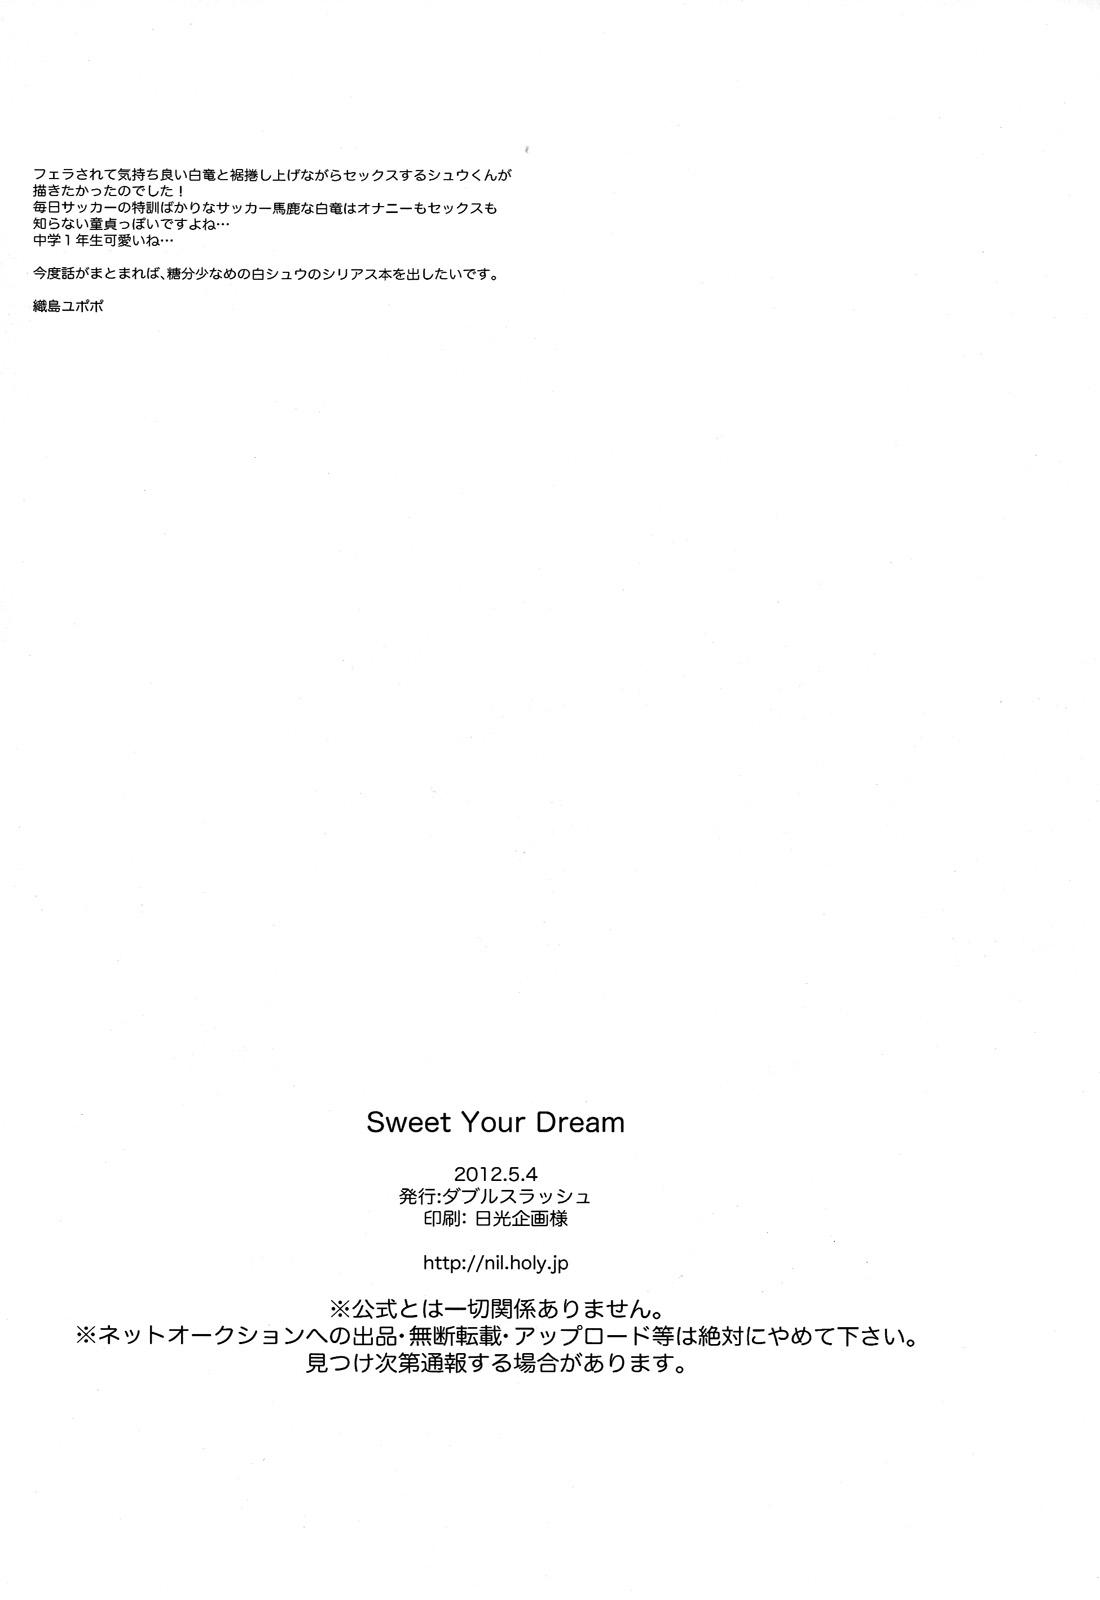 Sweet Your Dream 33